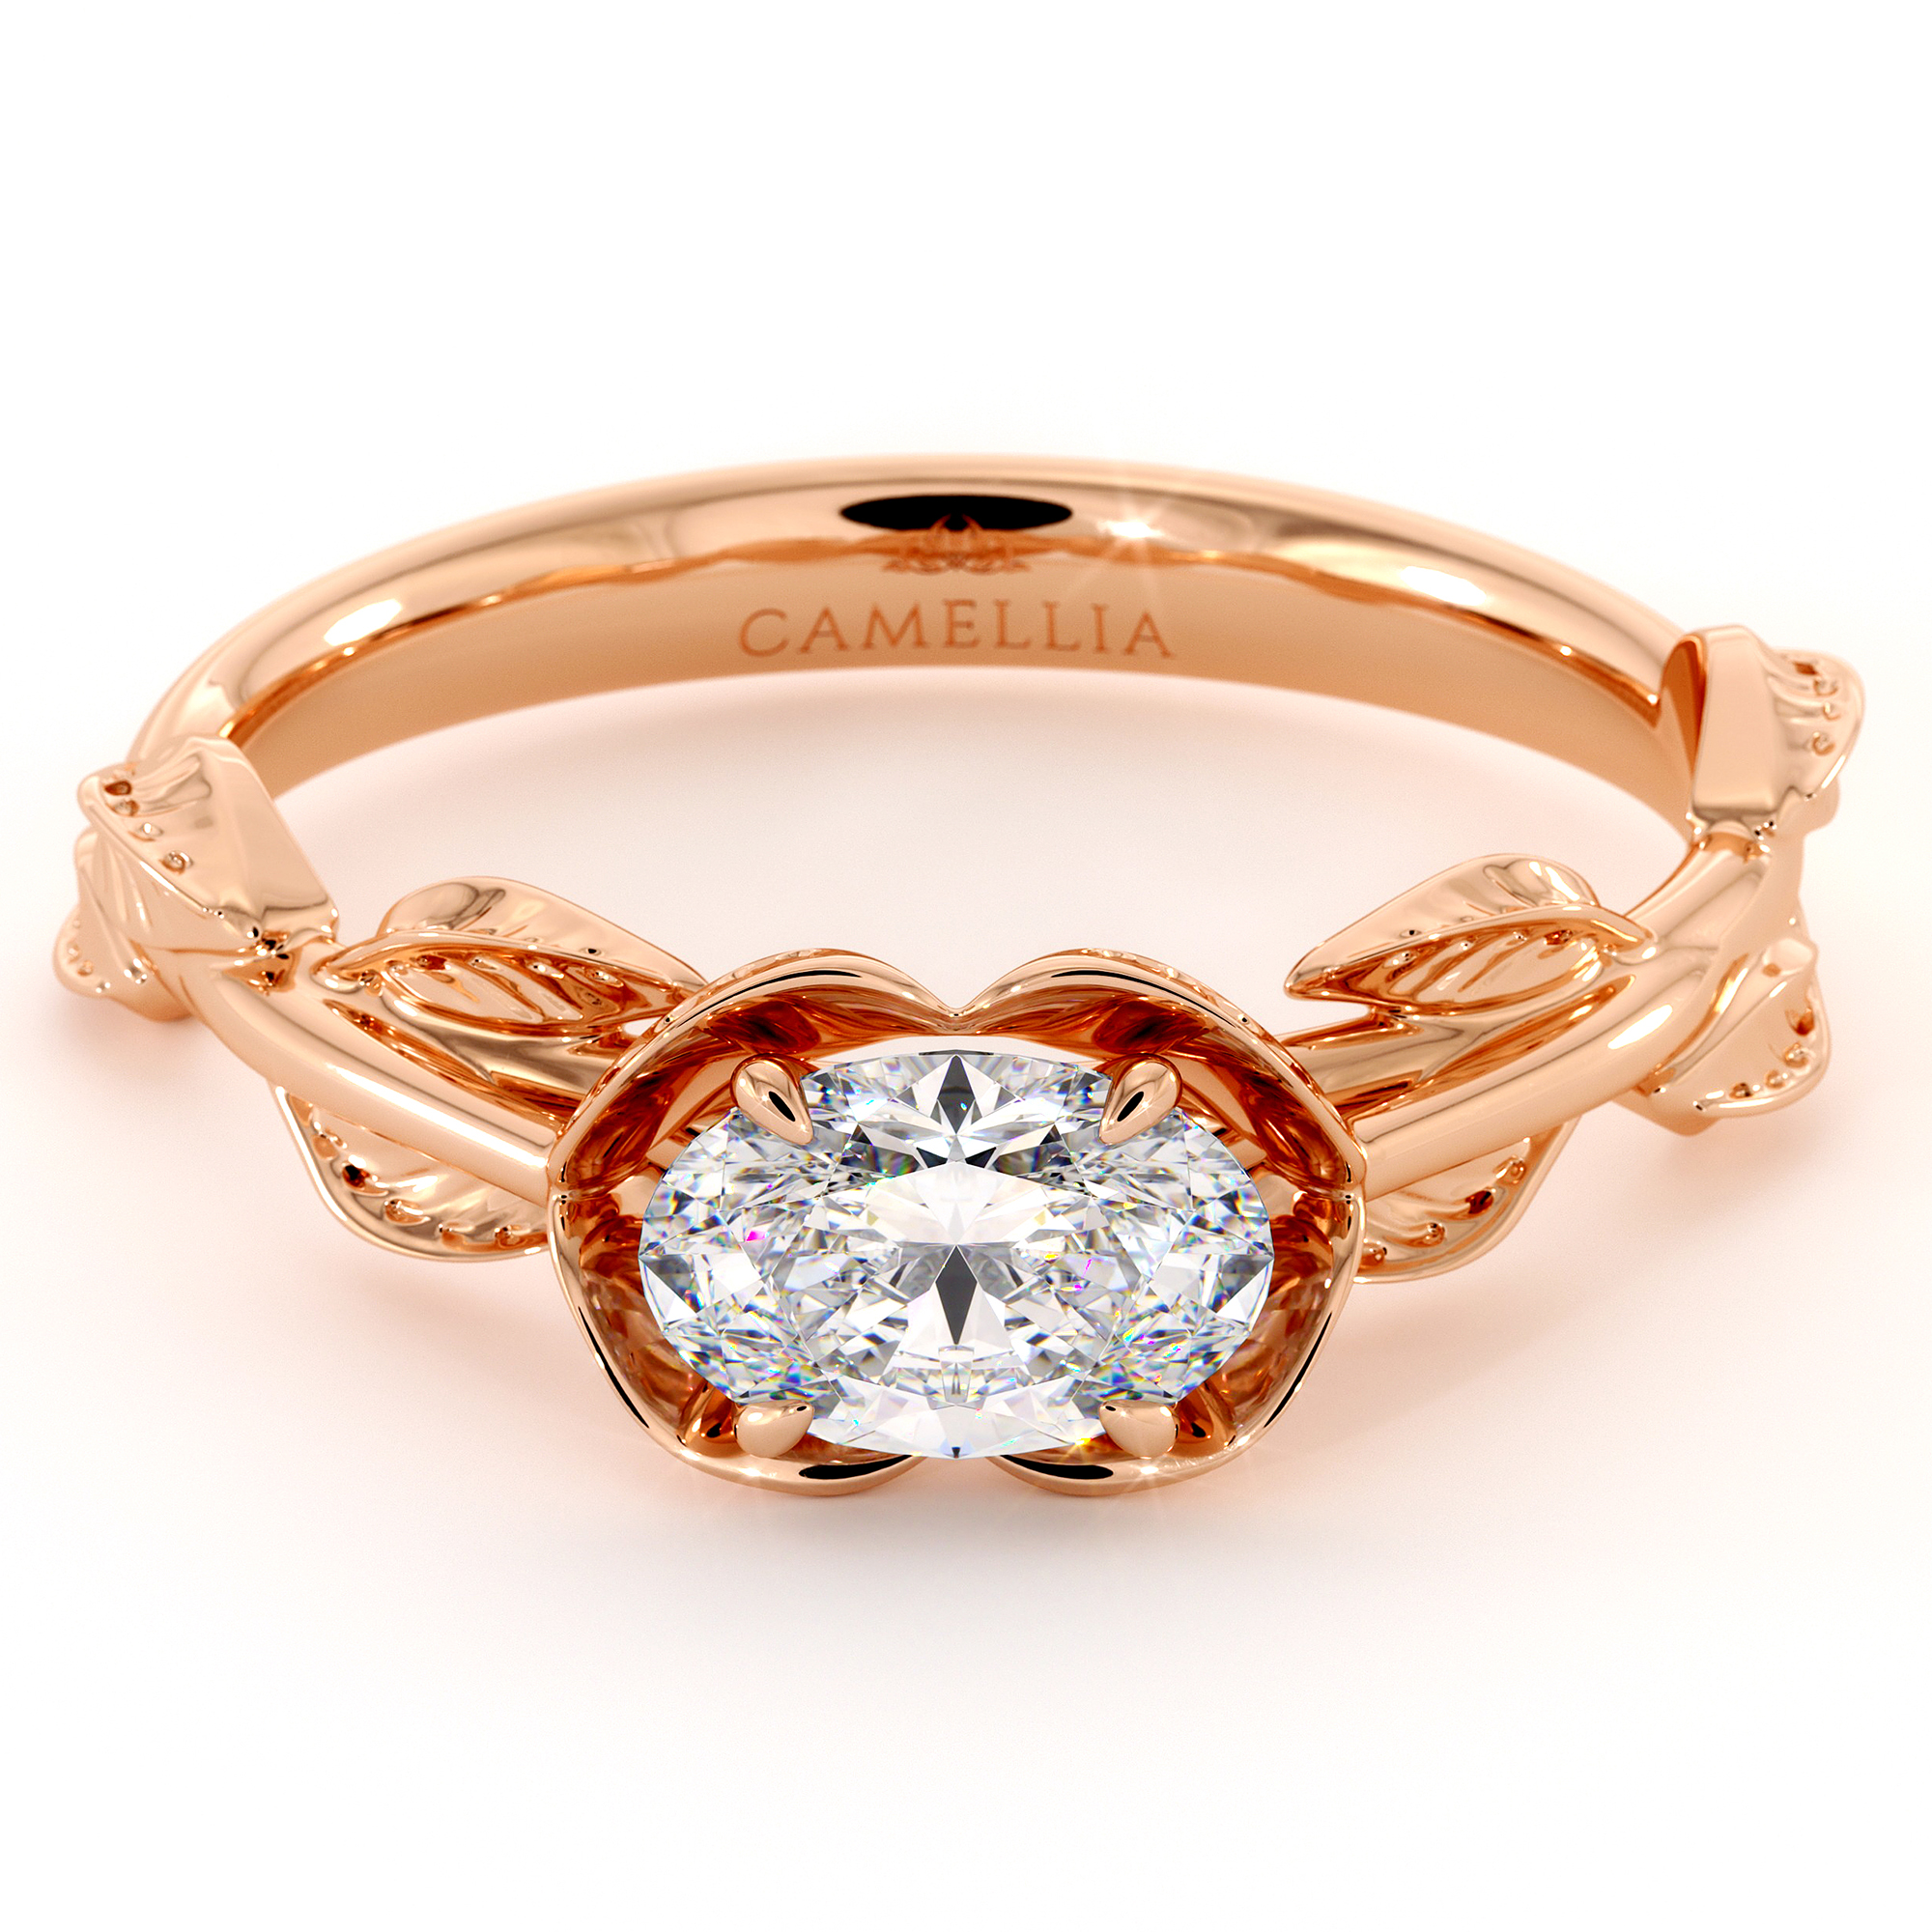 Oval Cut Moissanite Engagement Ring East To West Engagement Ring Rose Gold Leaves Wedding Ring